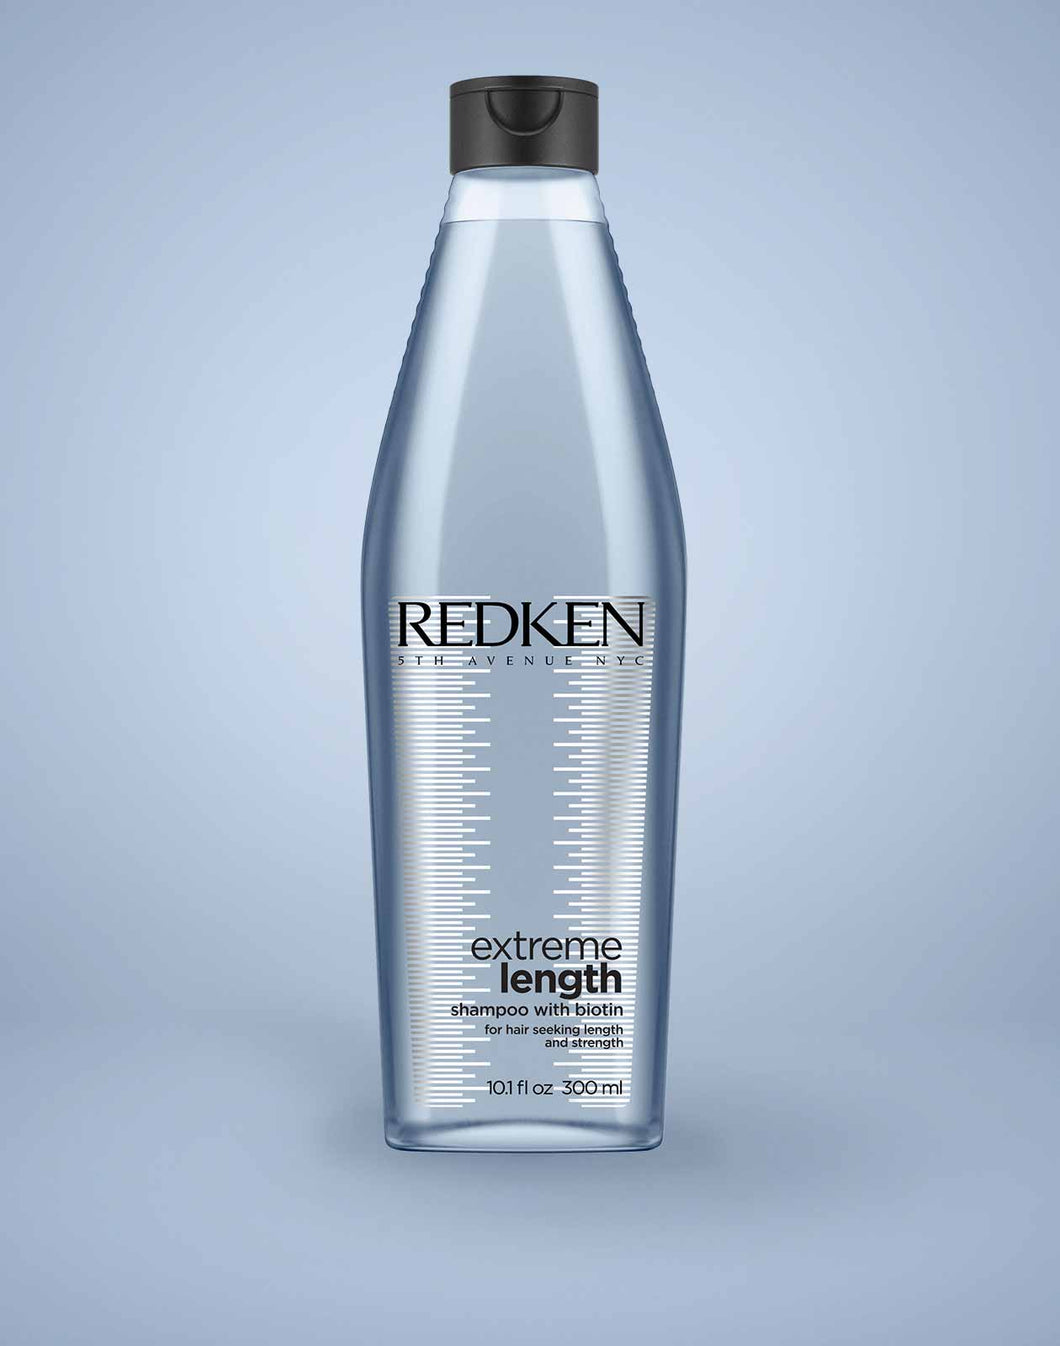 Redken Extreme Length With Biotin Shampoo